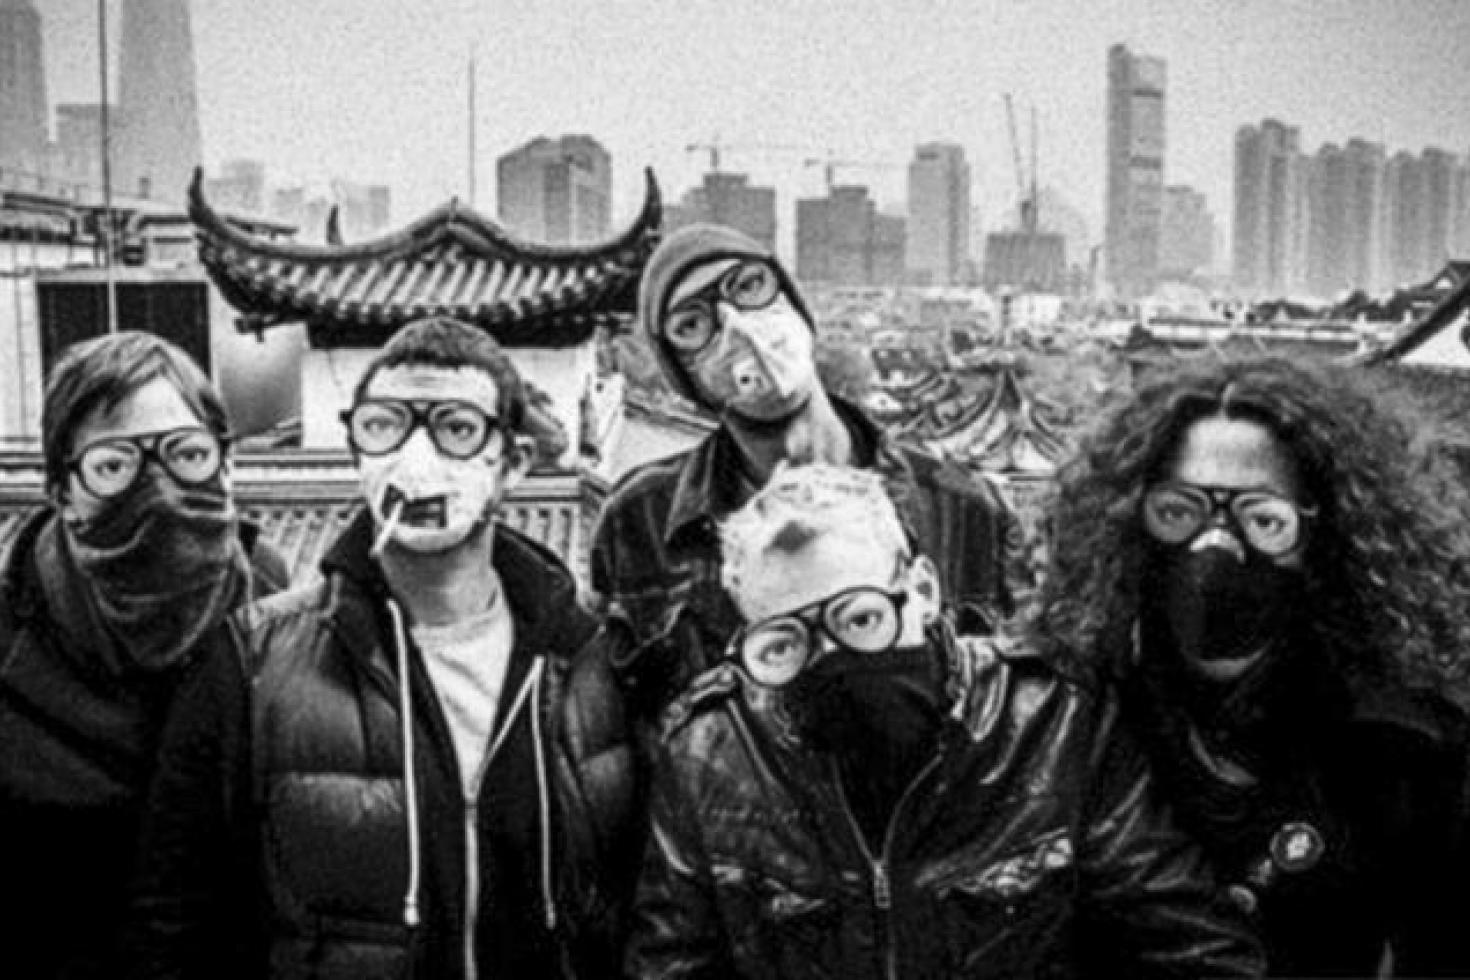 Round Eye release 'Do the Drumpf' music video